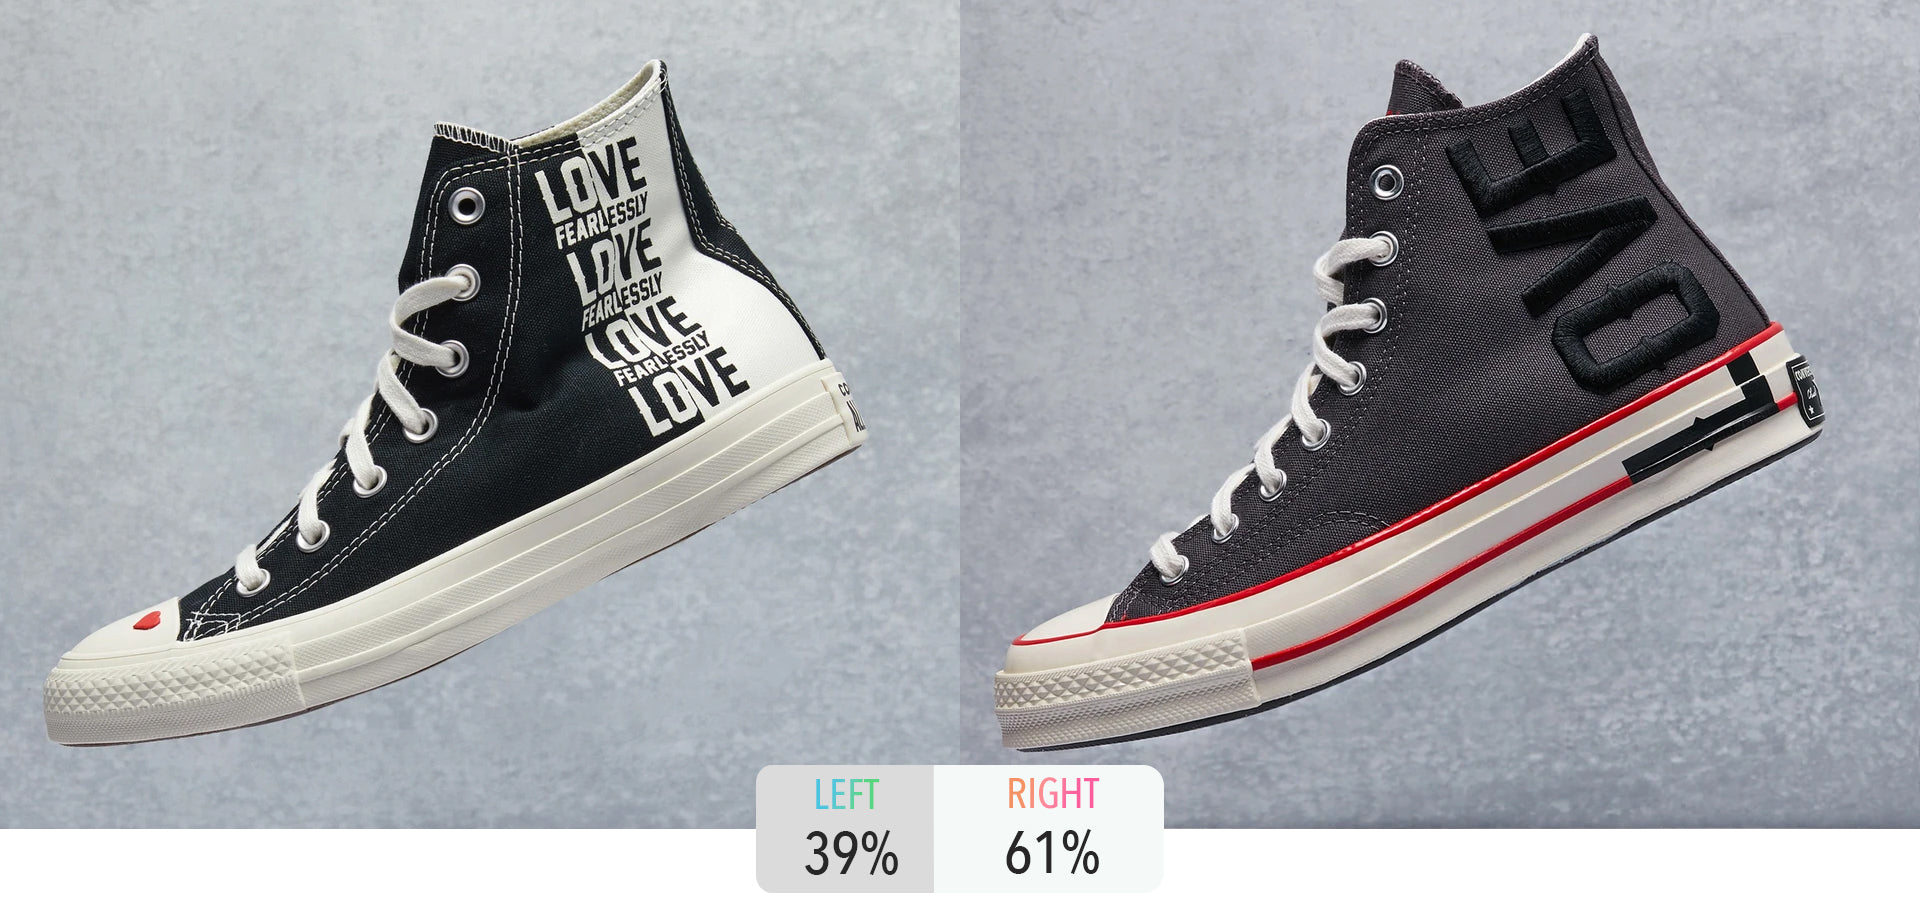 Drop 2 Drop, Dropkick - Converse Love Fearlessly Shoe